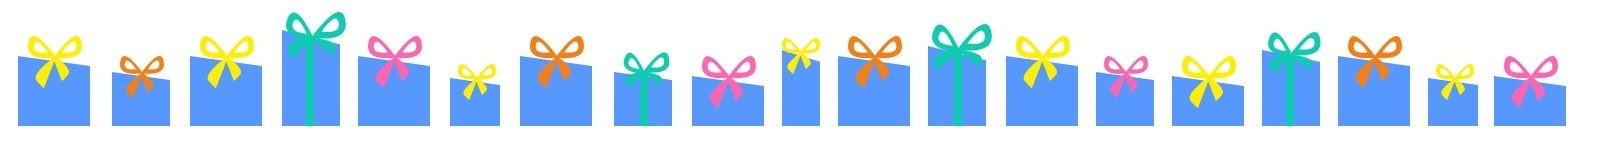 The gift guide banner